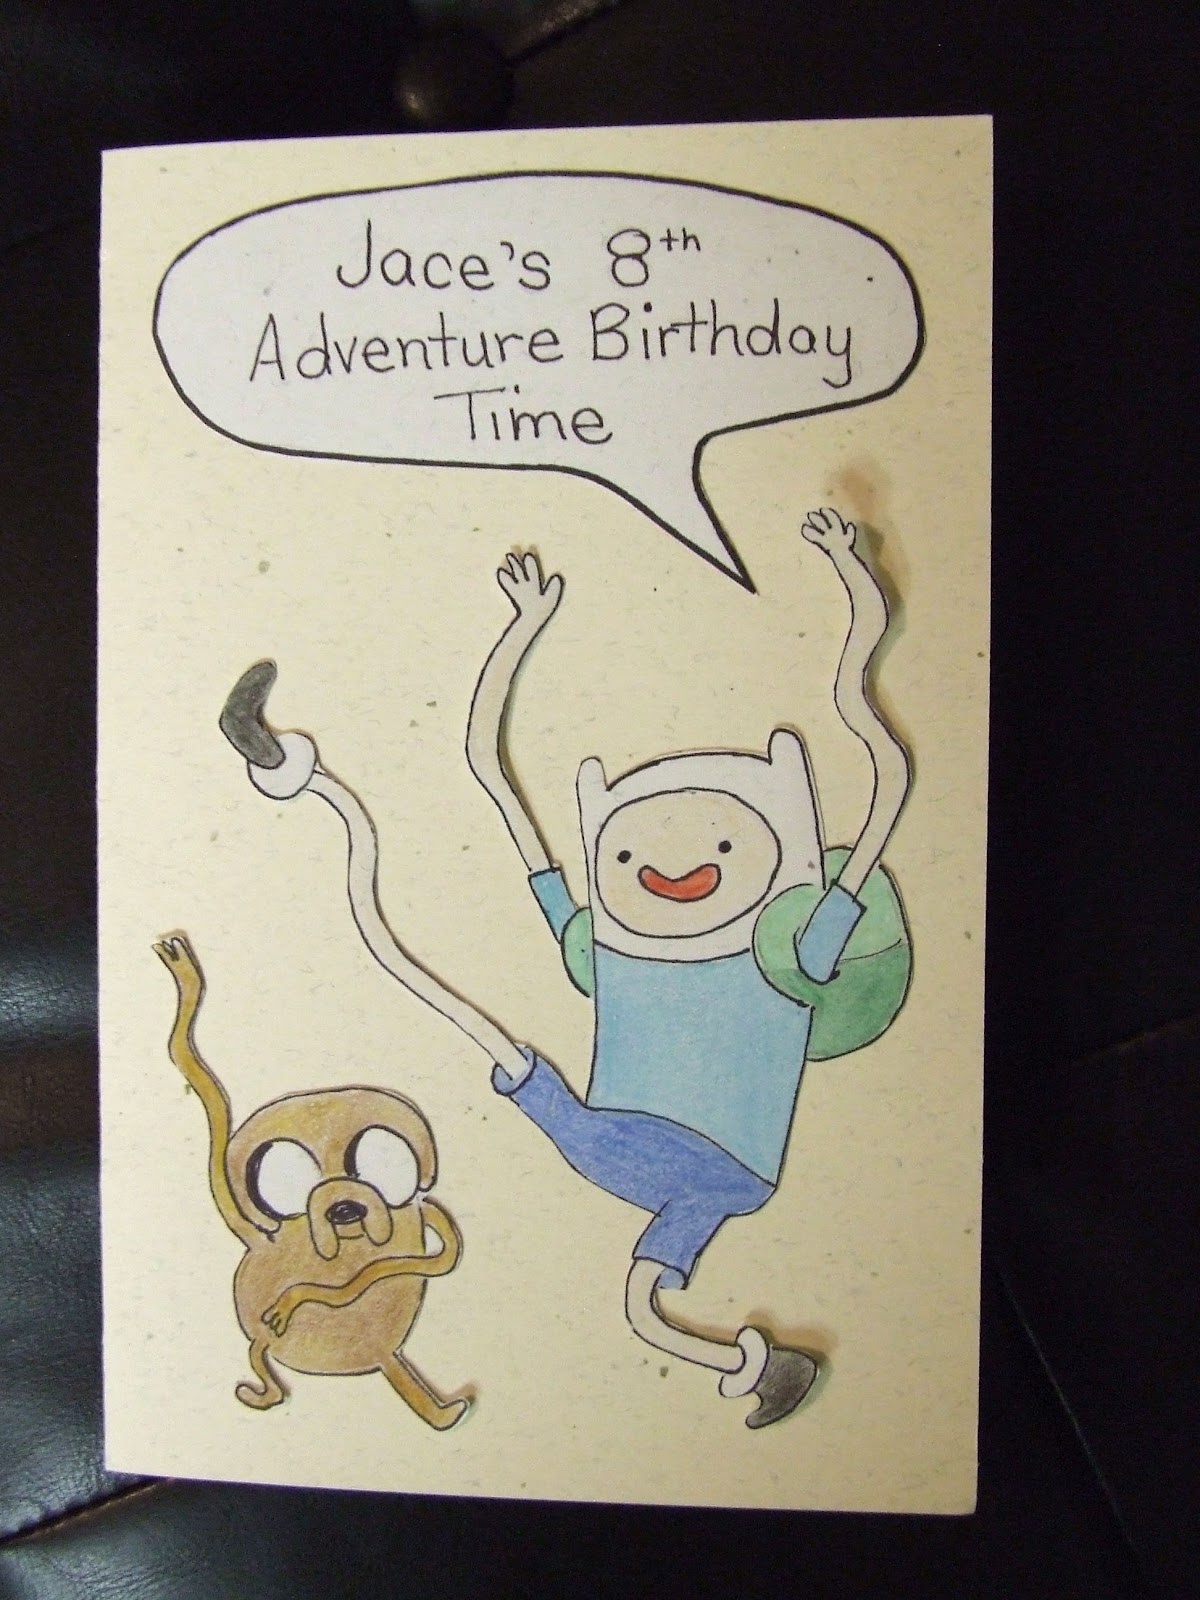 my inner need to create what time is it birthday time